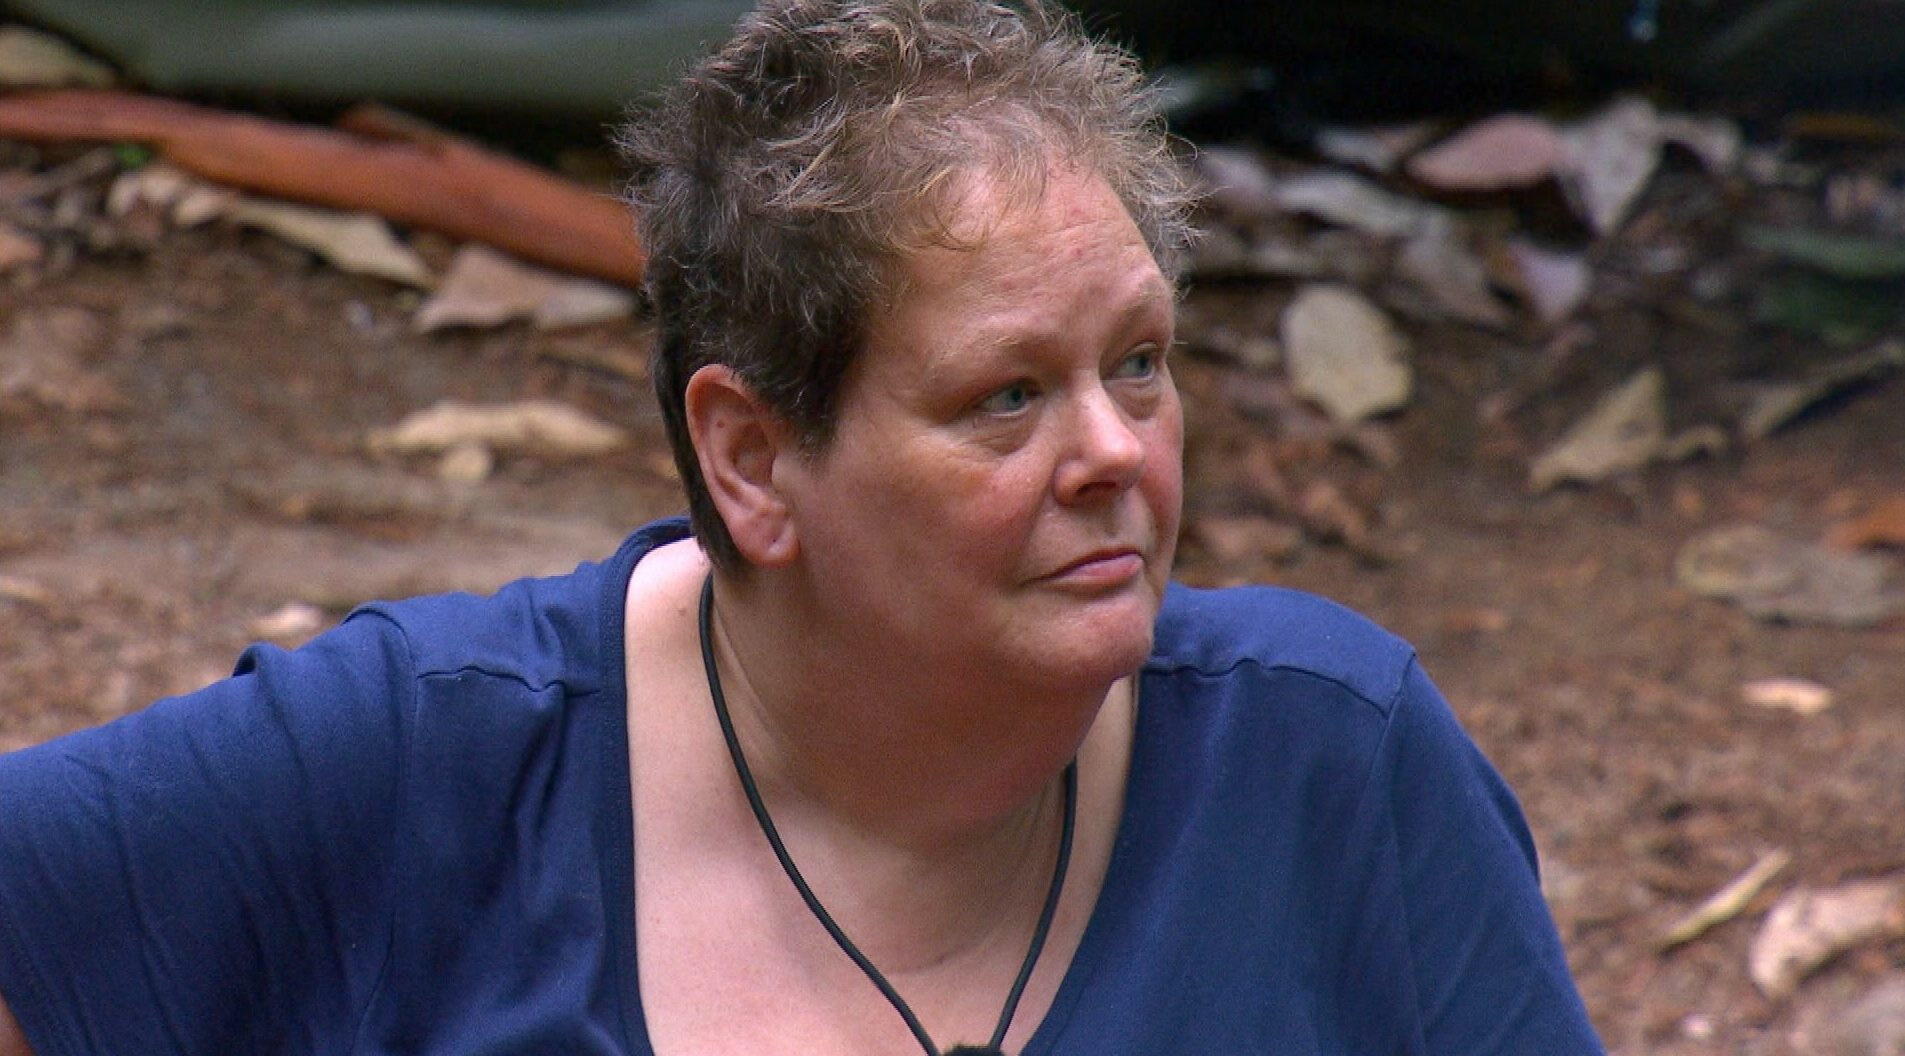 STRICT EMBARGO - NOT TO BE USED BEFORE 22:30 GMT, 06 DEC 2018 - EDITORIAL USE ONLY Mandatory Credit: Photo by ITV/REX (10015201cw) Morning Story: Anne Other Bites The Dust - Anne Hegerty 'I'm a Celebrity... Get Me Out of Here!' TV Show, Series 18, Australia - 06 Dec 2018